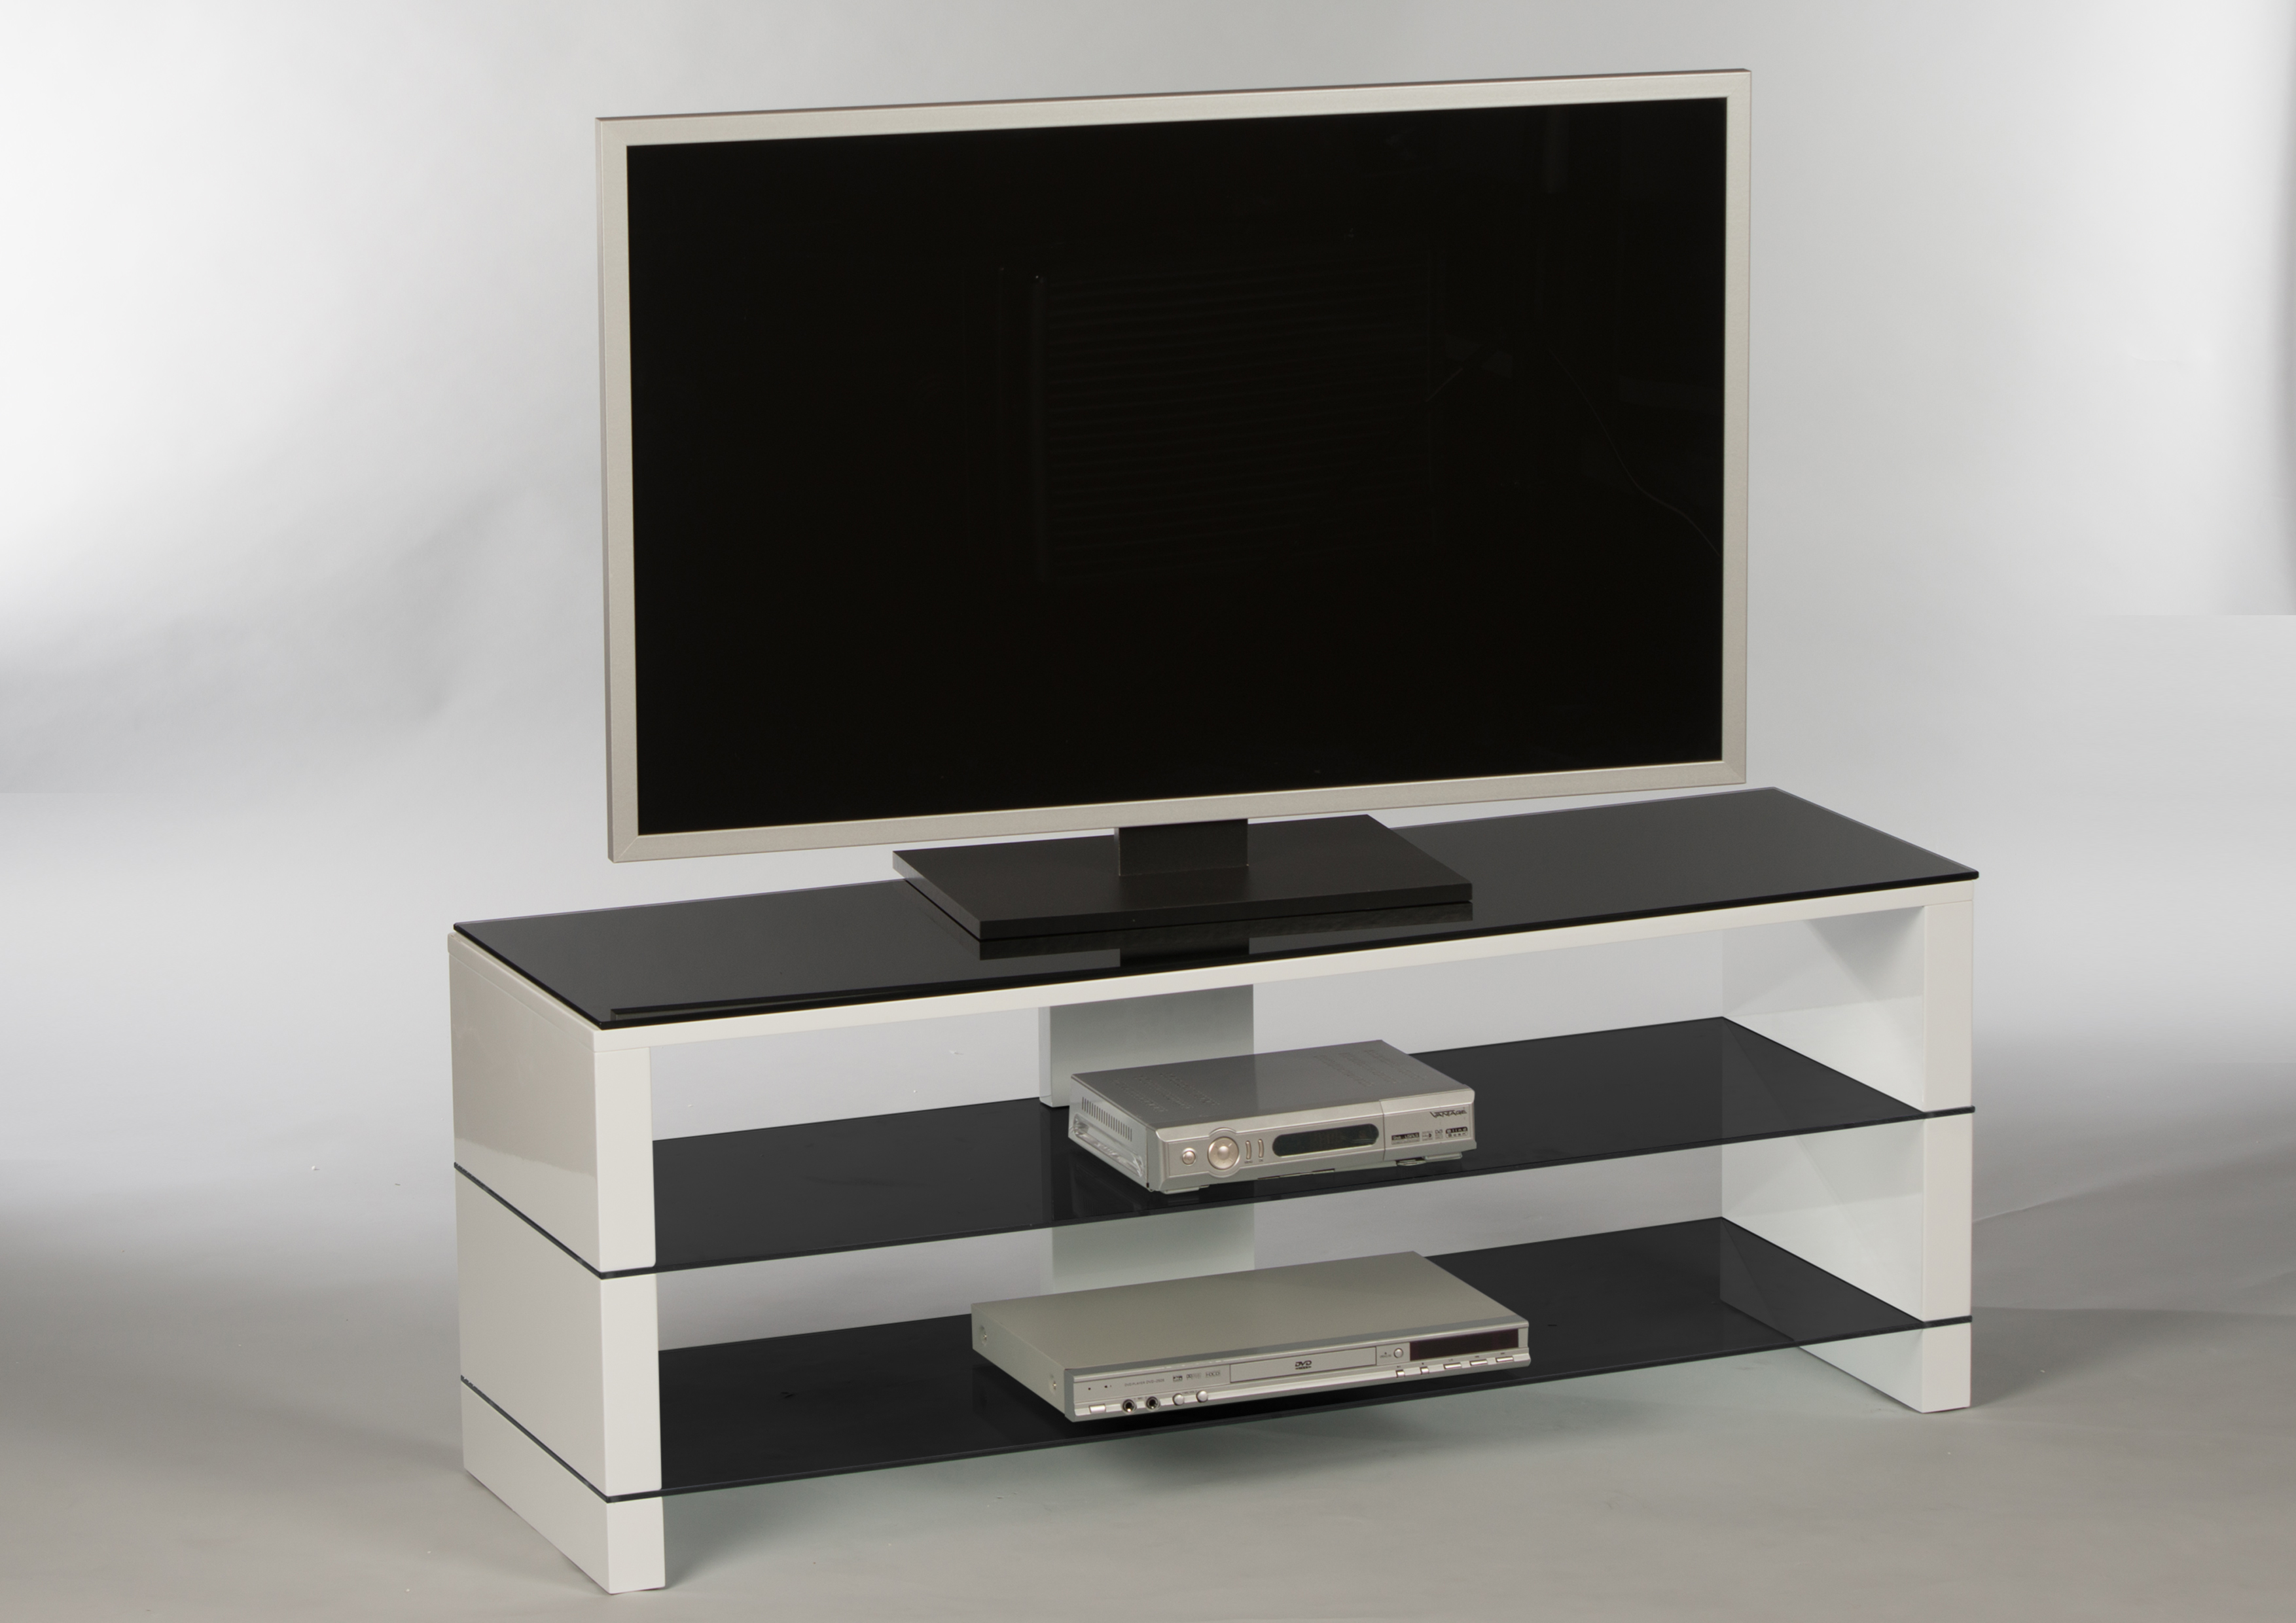 tv lowboard pisa fernsehtisch rack sideboard fernsehschrank tisch weiss schwarz ebay. Black Bedroom Furniture Sets. Home Design Ideas